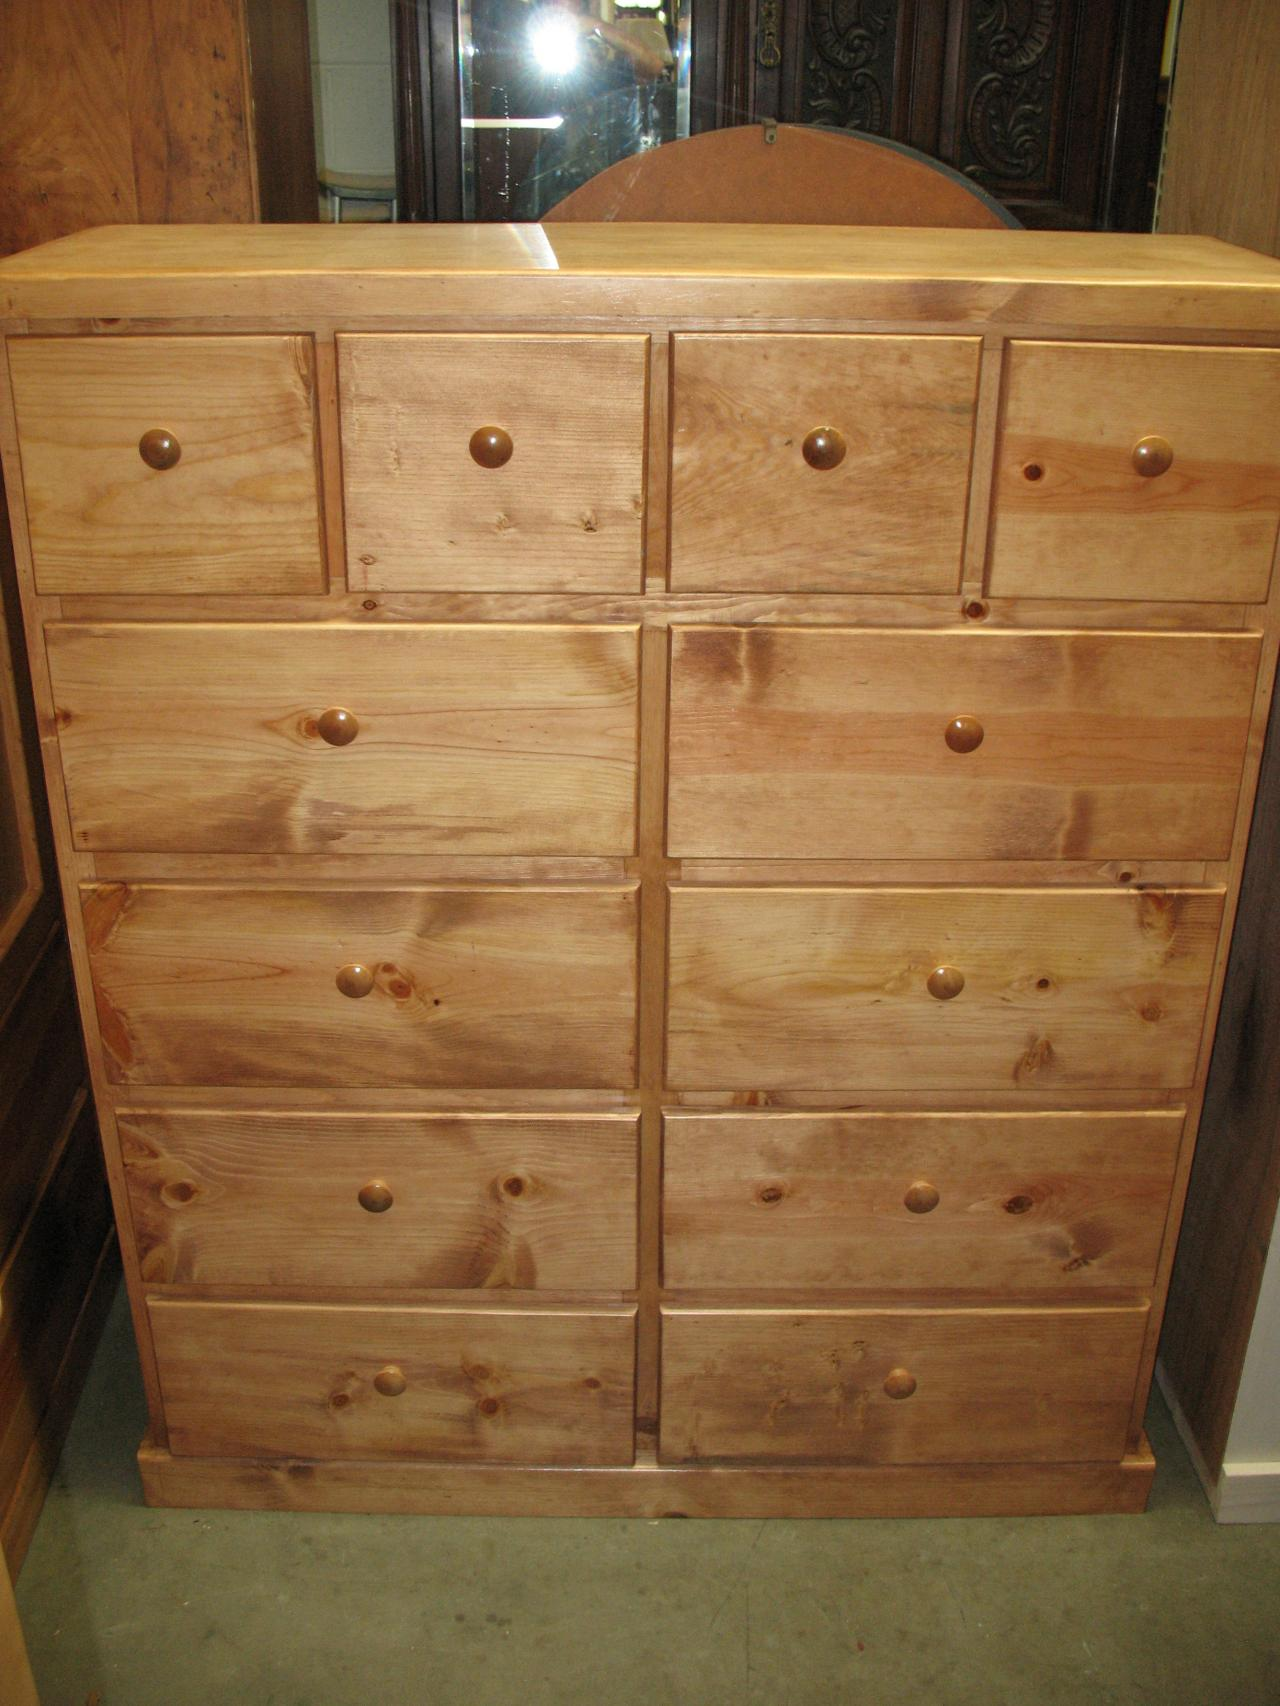 Cheap - Wood dressers or dresser @ Cheap Vintage, 25408 Narbonne Ave ...